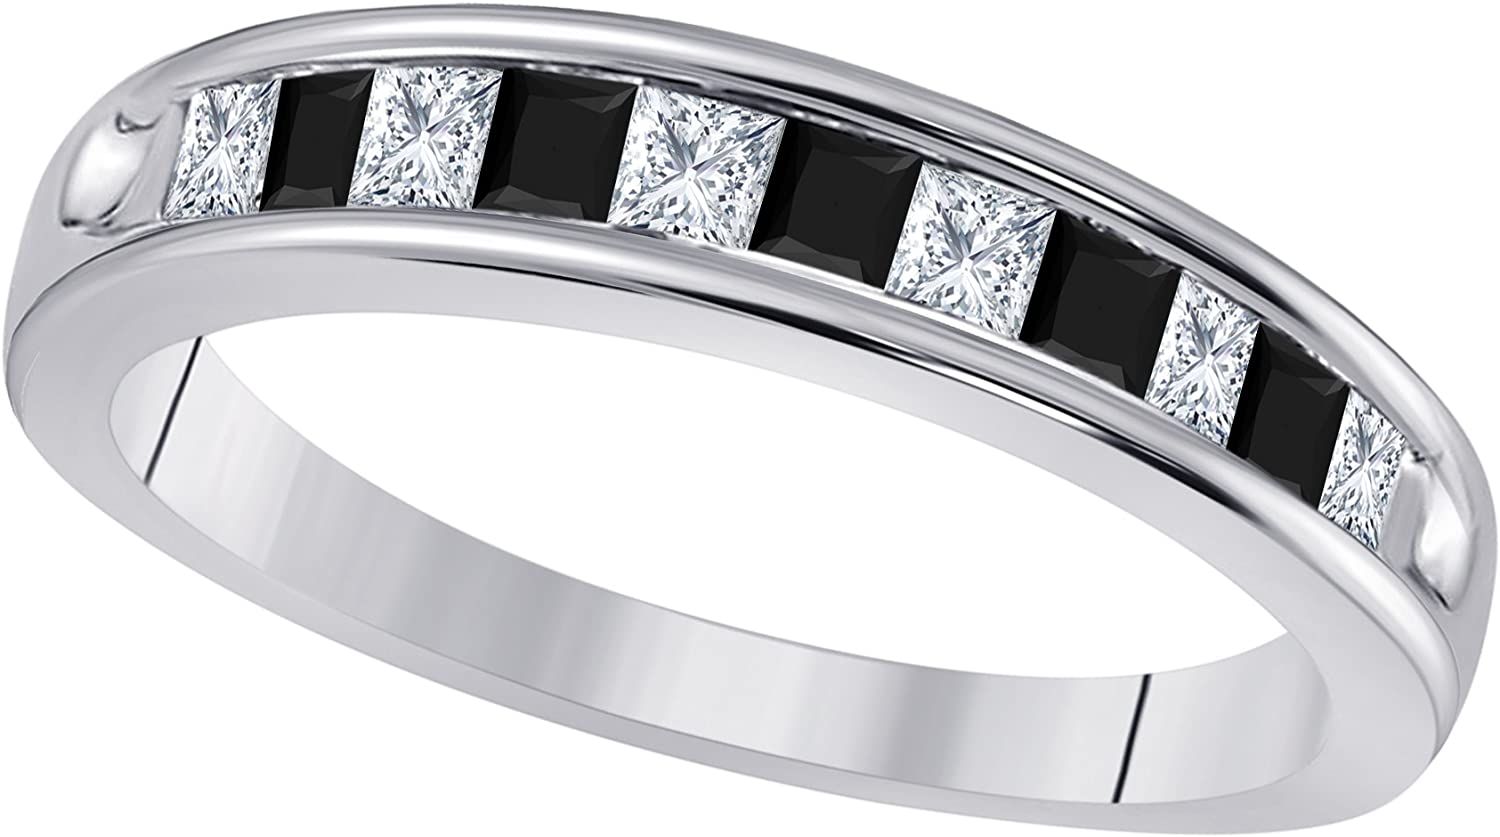 Sterling Silver Plated Our shop Max 61% OFF most popular 1 2 Ct Cut CZ Diamond Simulated Princess